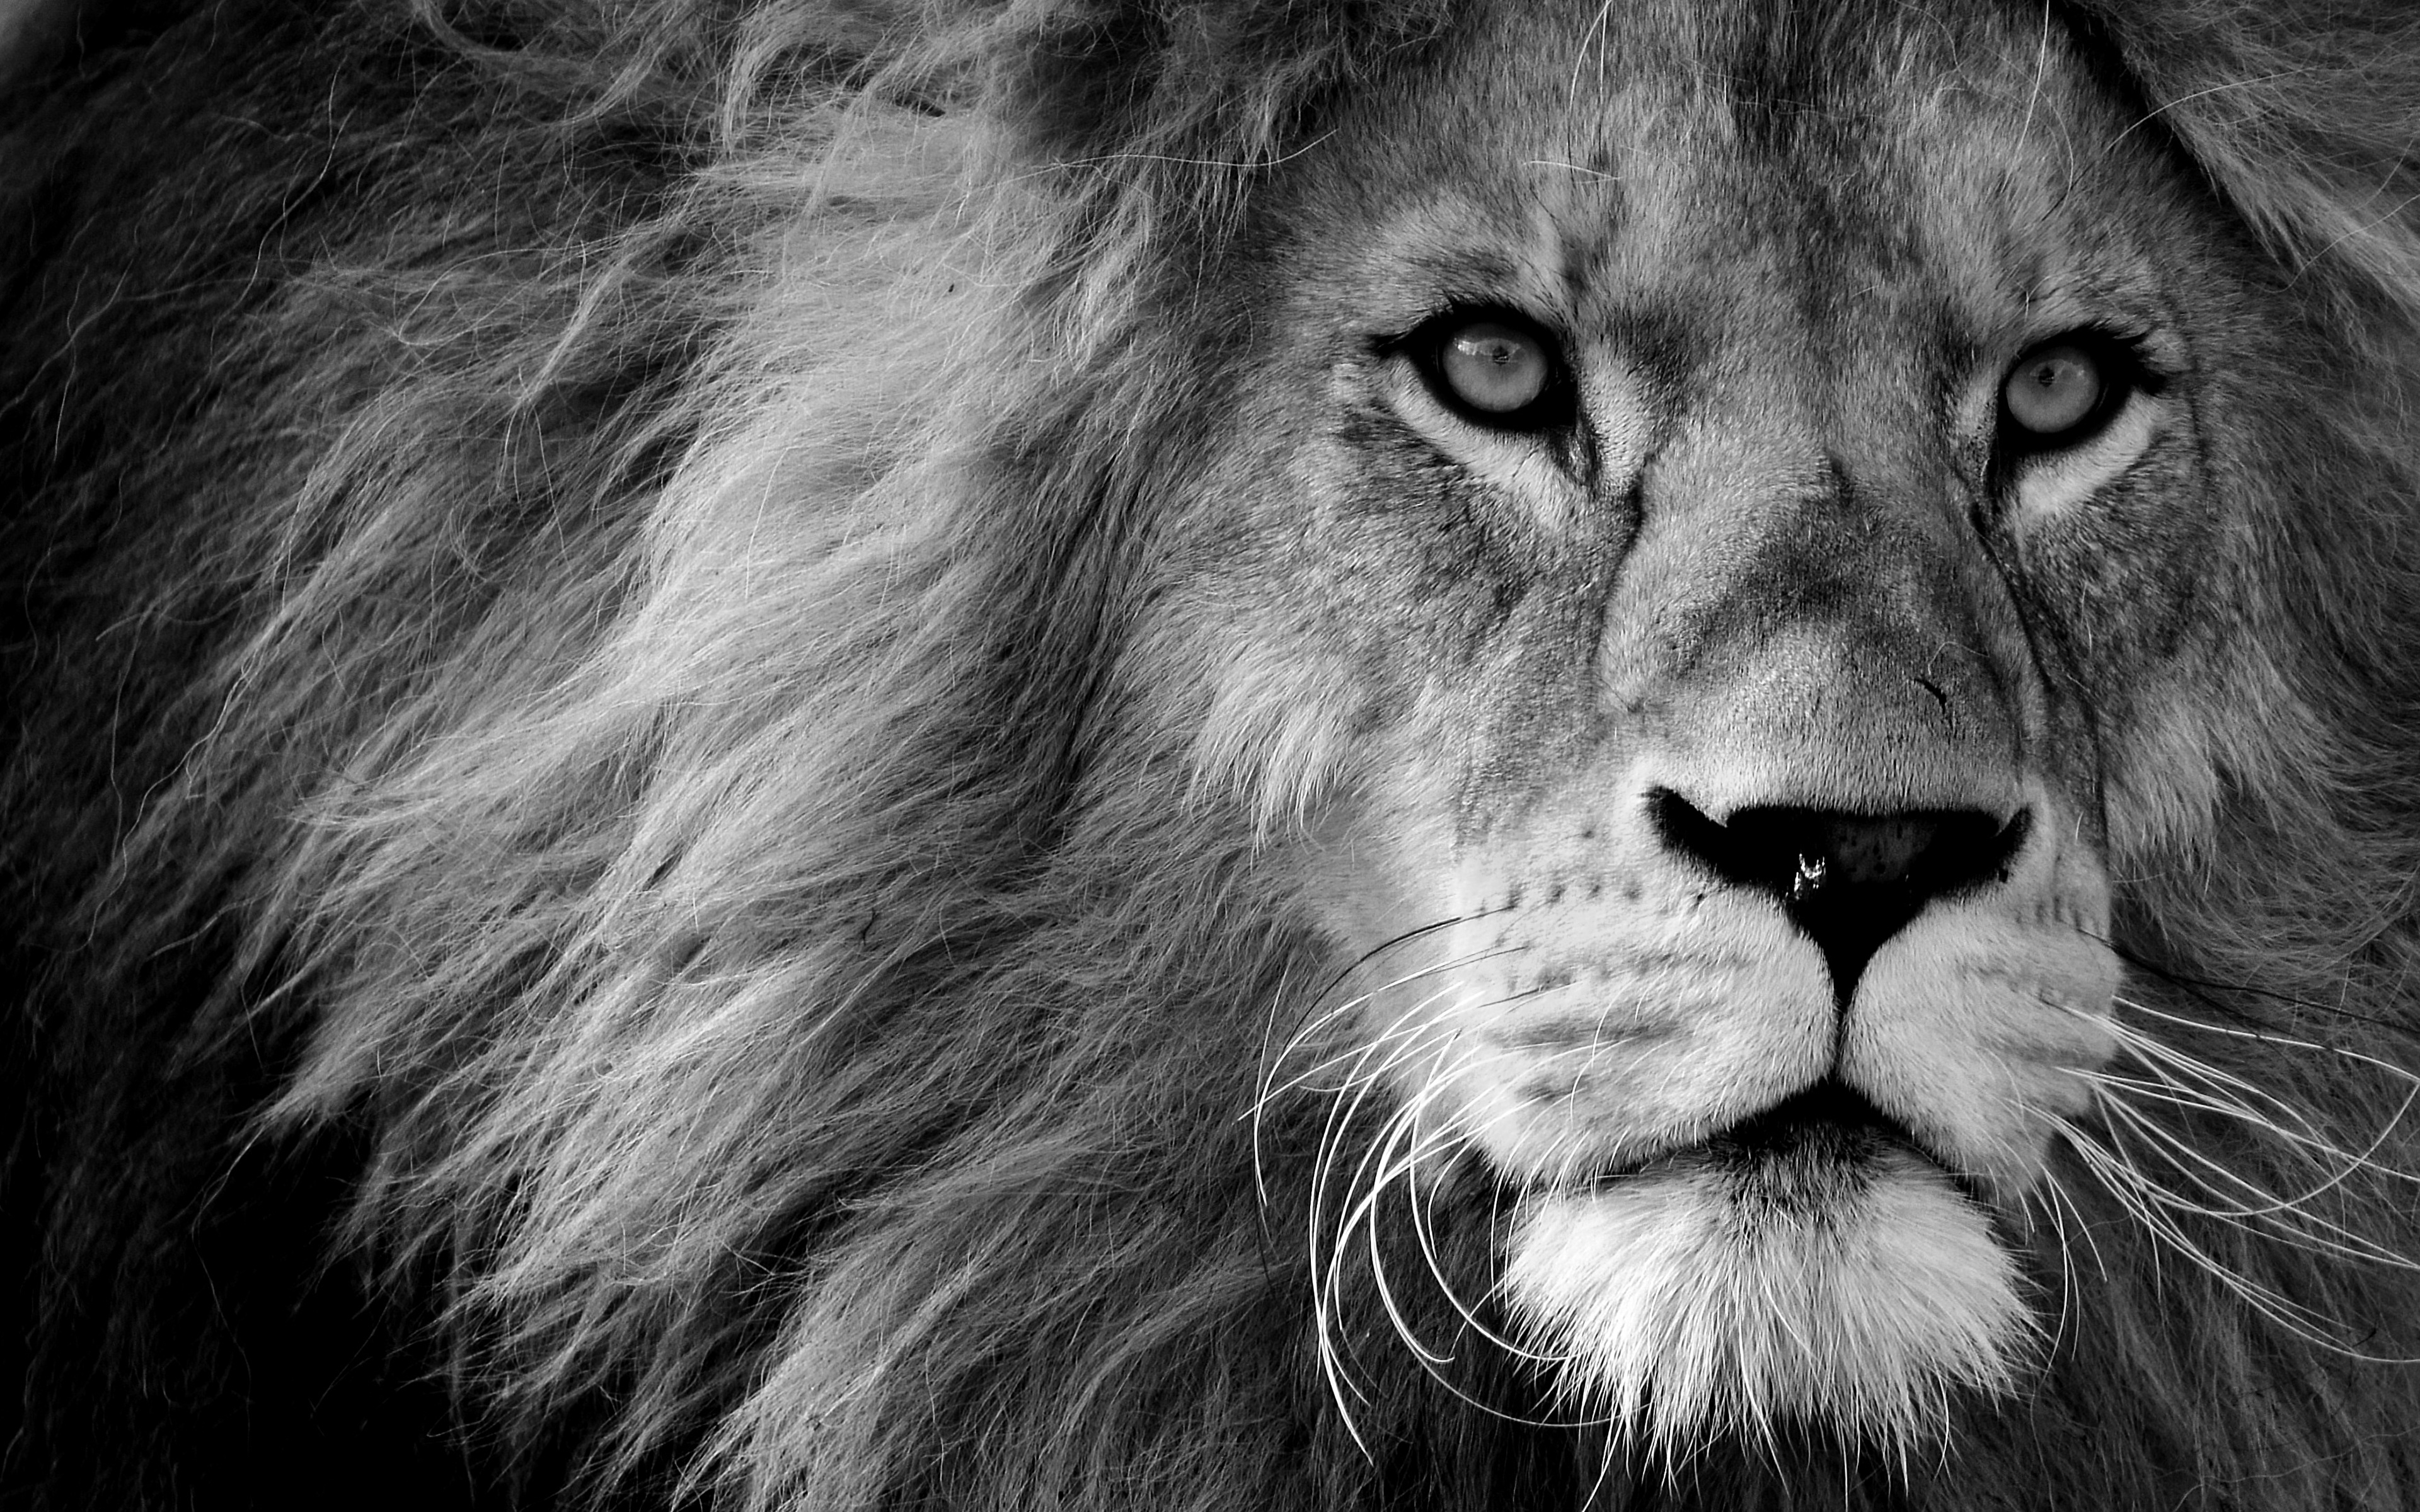 Picture Lions Snout Black And White Animal Staring 3840x2400